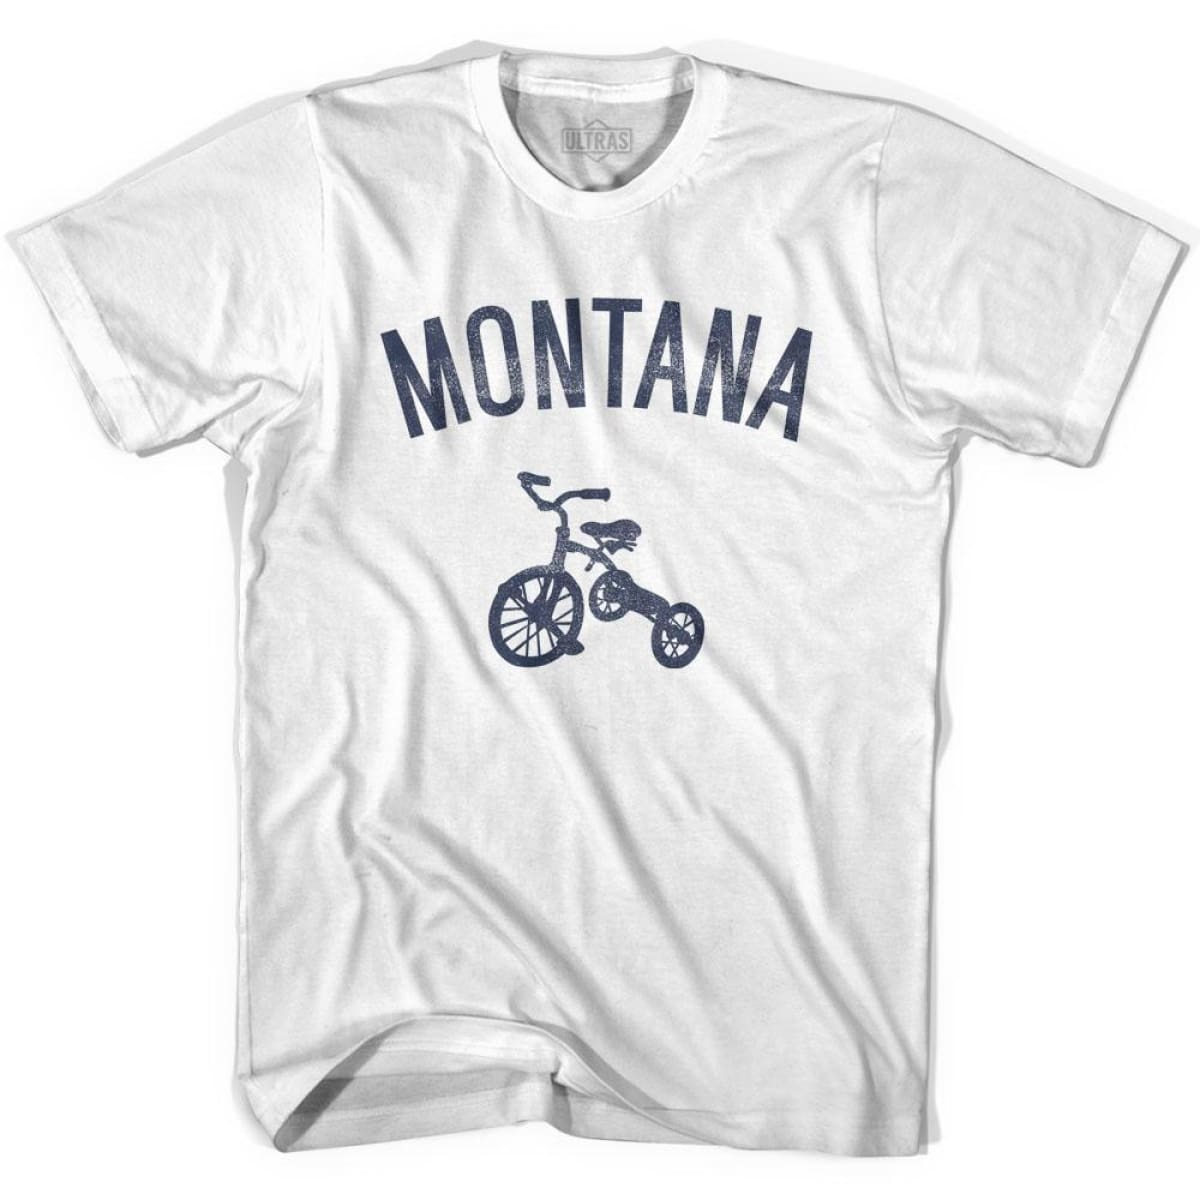 Montana State Tricycle Adult Cotton T-shirt - White / Adult Small - Tricycle State